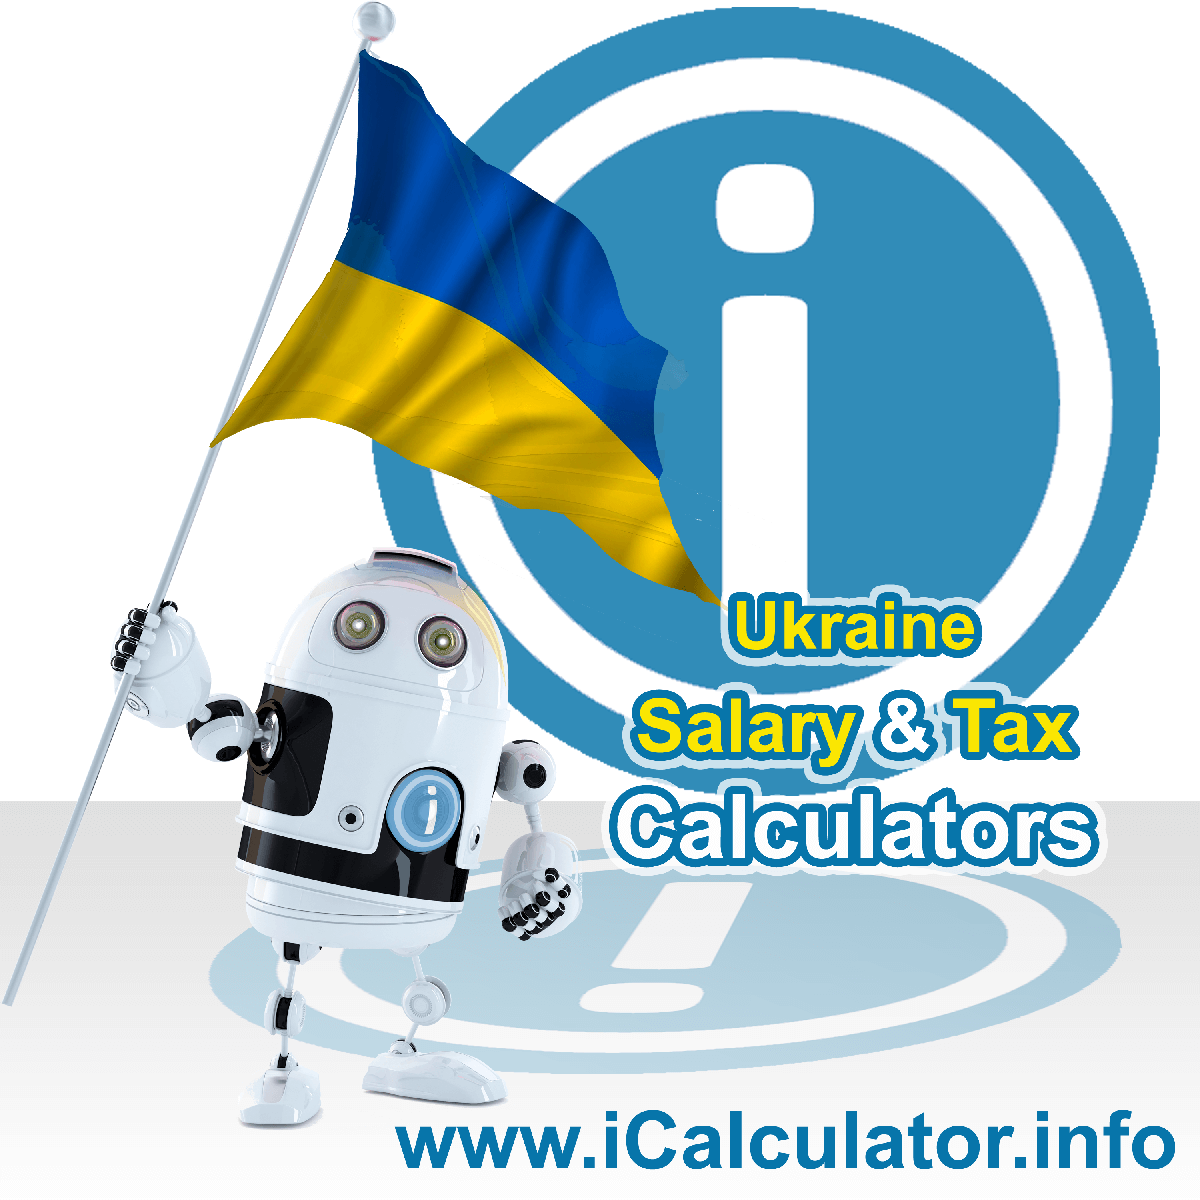 Ukraine Wage Calculator. This image shows the Ukraine flag and information relating to the tax formula for the Ukraine Tax Calculator